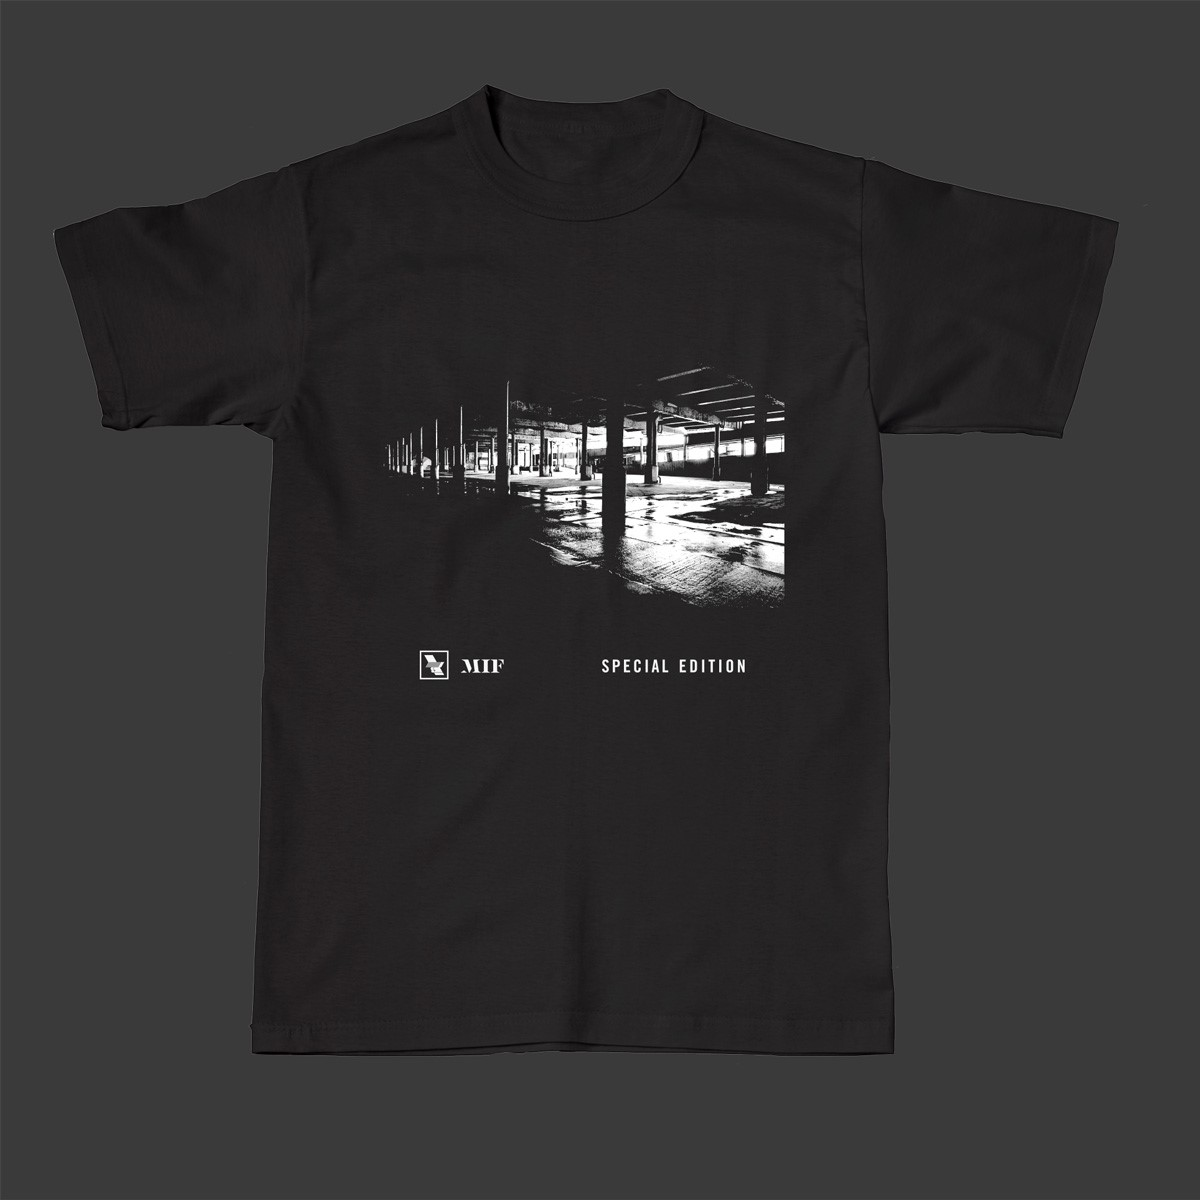 WHP x MIF Special Edition Tee - The Warehouse Project